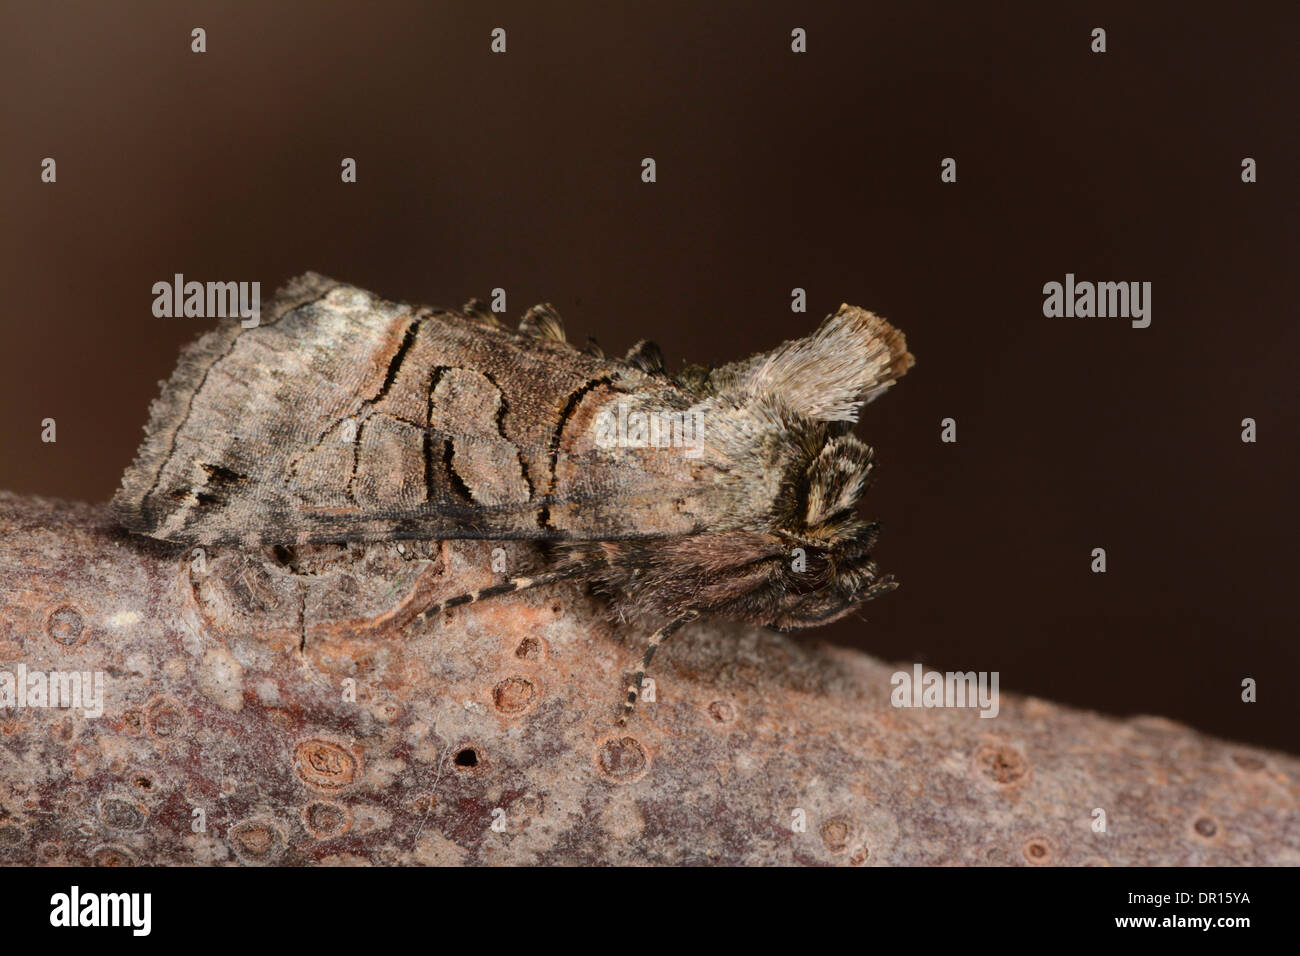 The Spectacle Moth (Abrostola triplasia) adult at rest on twig, Oxfordshire, England, August - Stock Image